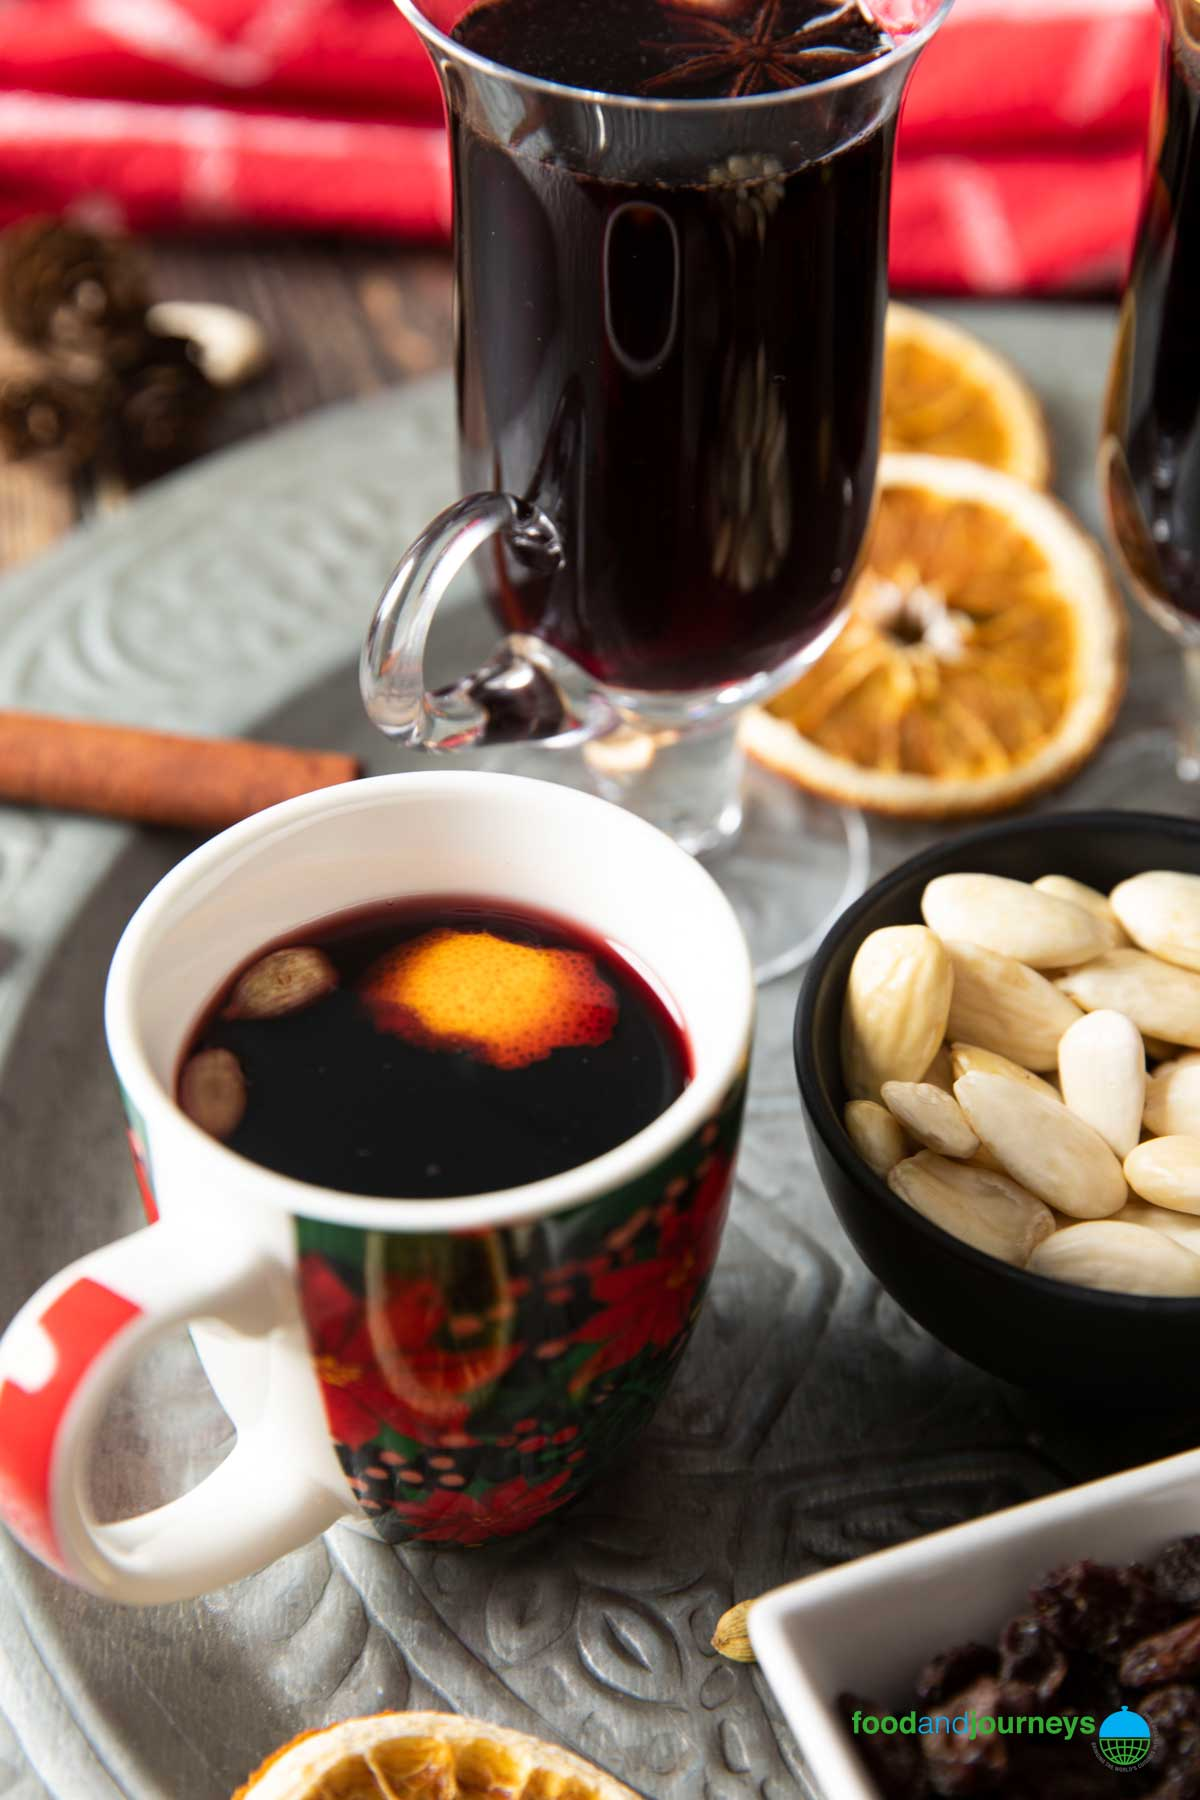 An image that shows how Swedish glogg is served, with raisins and blanced almonds.